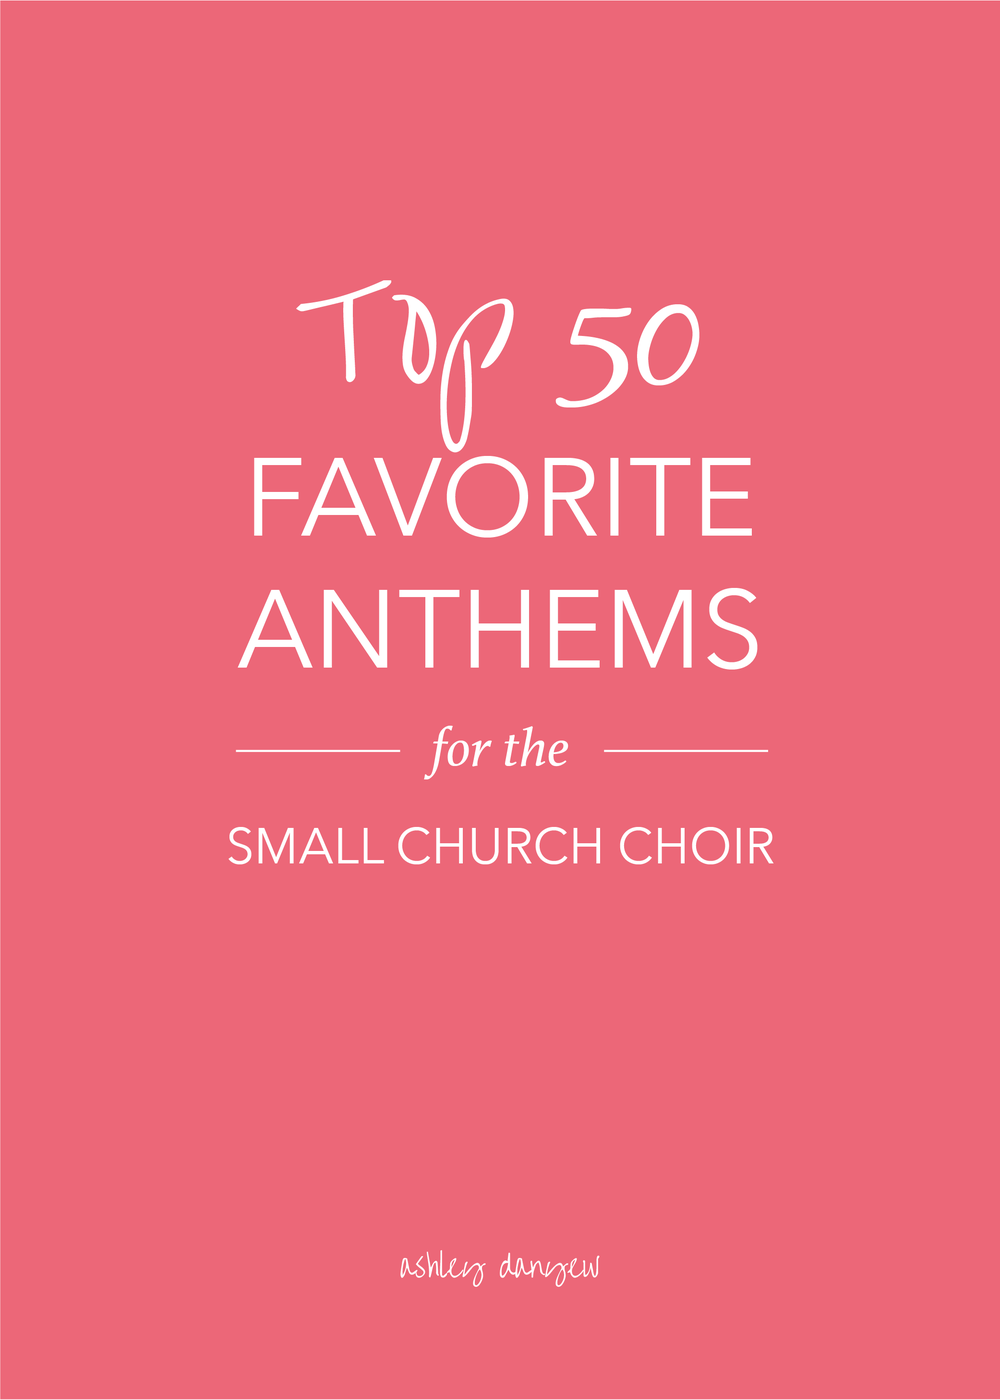 50 Favorite Anthems for the Small Church Choir-01.png